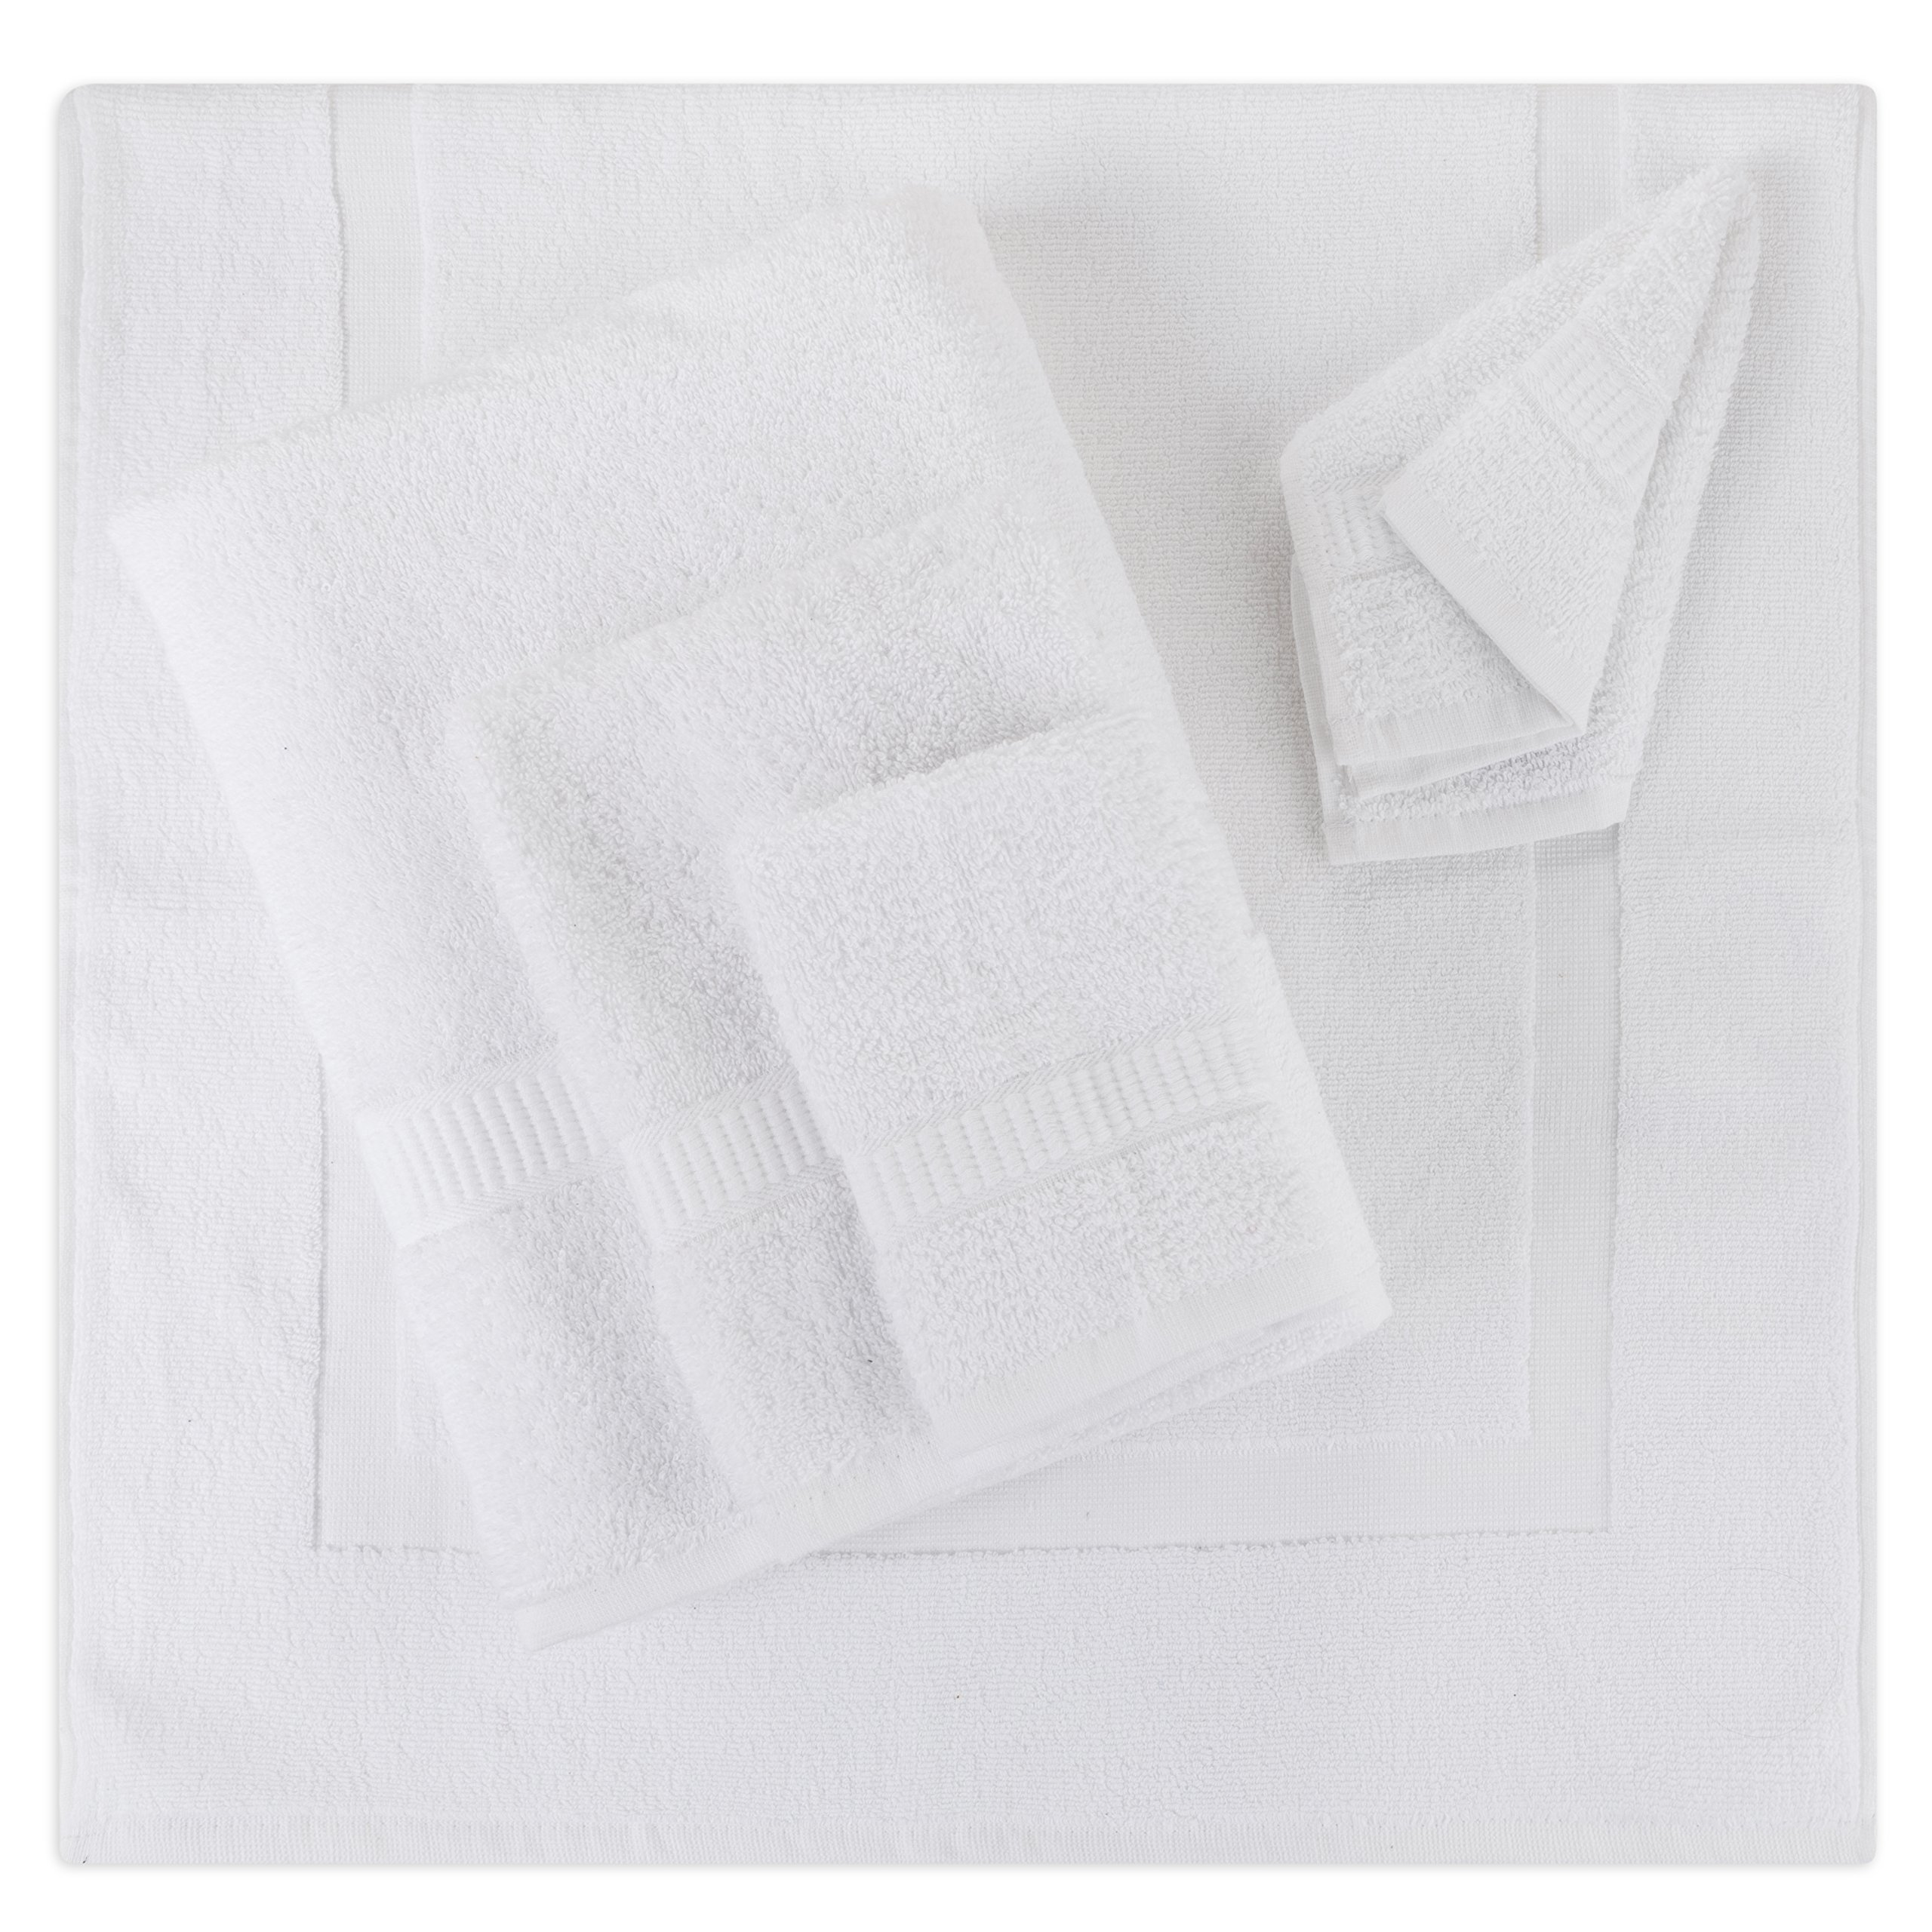 5- Piece Bath Mat Set | Matching Bathroom Floor Mat with Towels | All-in-one Shower Collection | Spa Gift Package |1 Bath Mat, 1 Bath Towel, 1 Hand Towel, 2 Wash Cloths | 100% Organic Cotton (White)